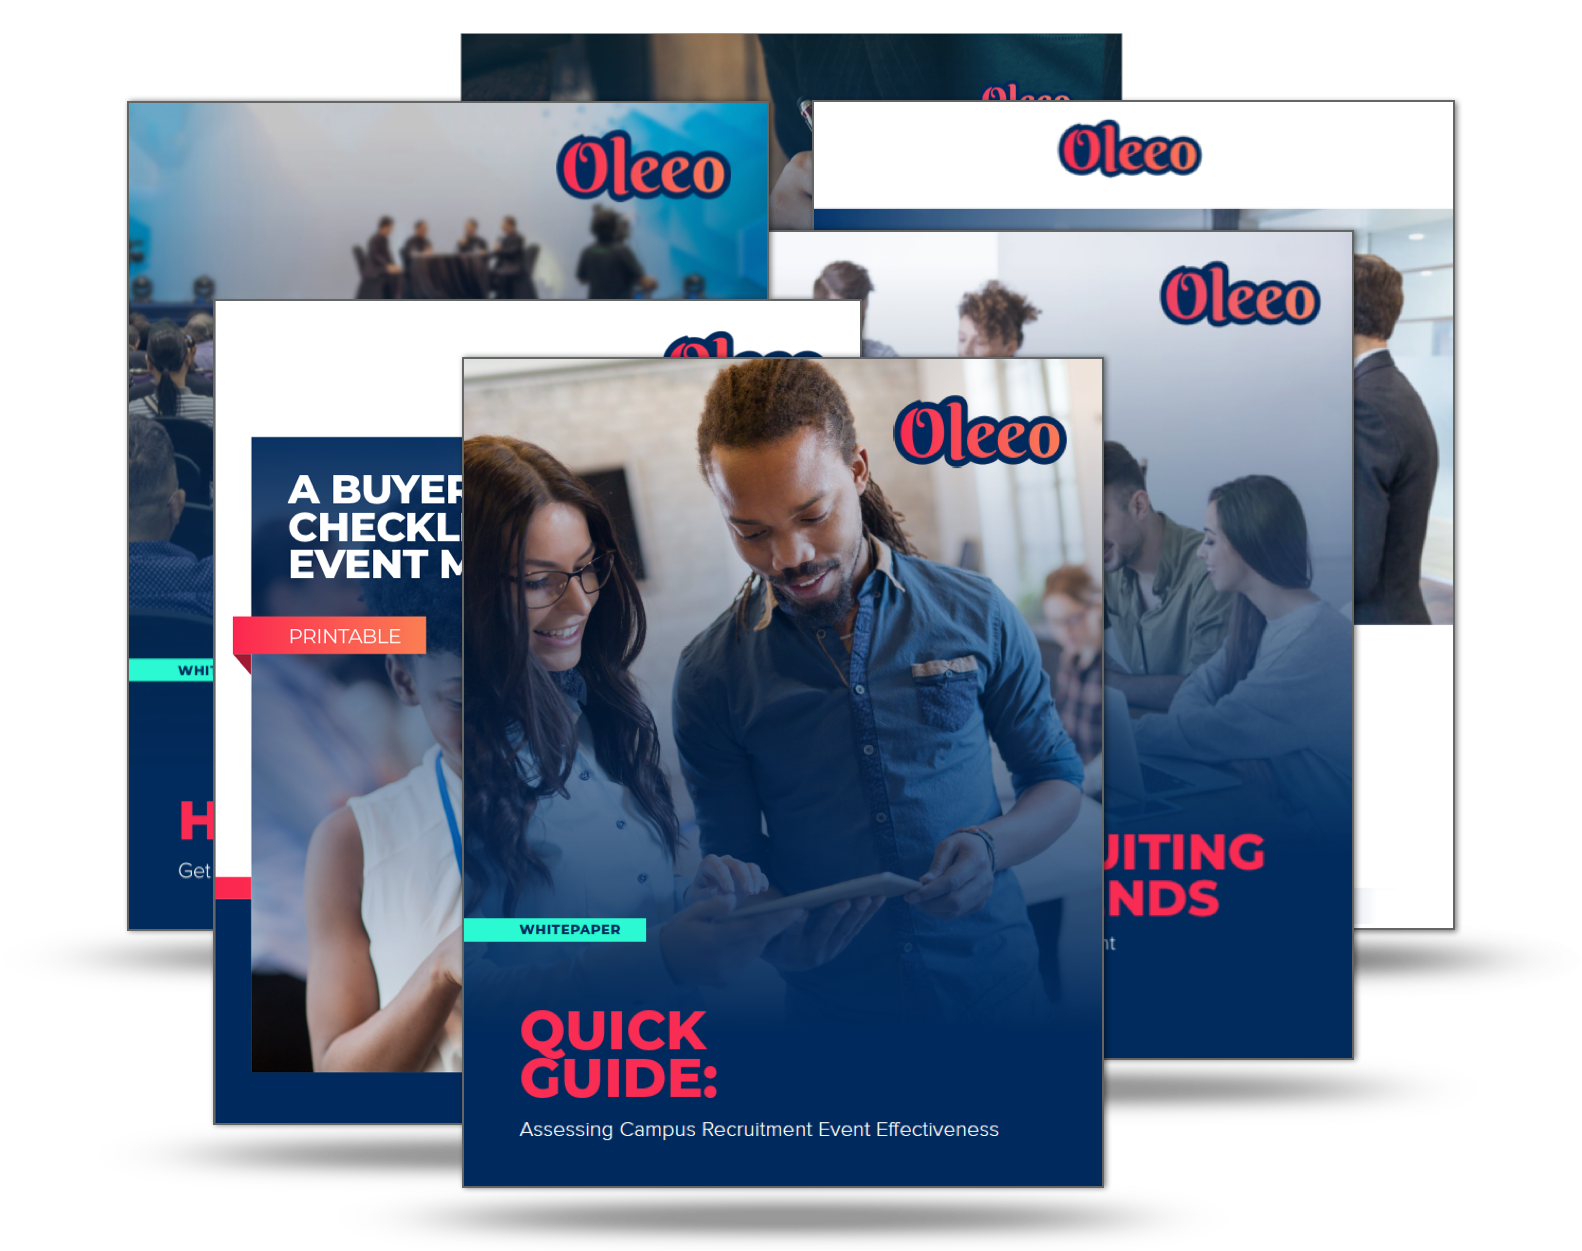 OLE-High-Volume-Recruiting Events-Mockup-Tight-FINAL